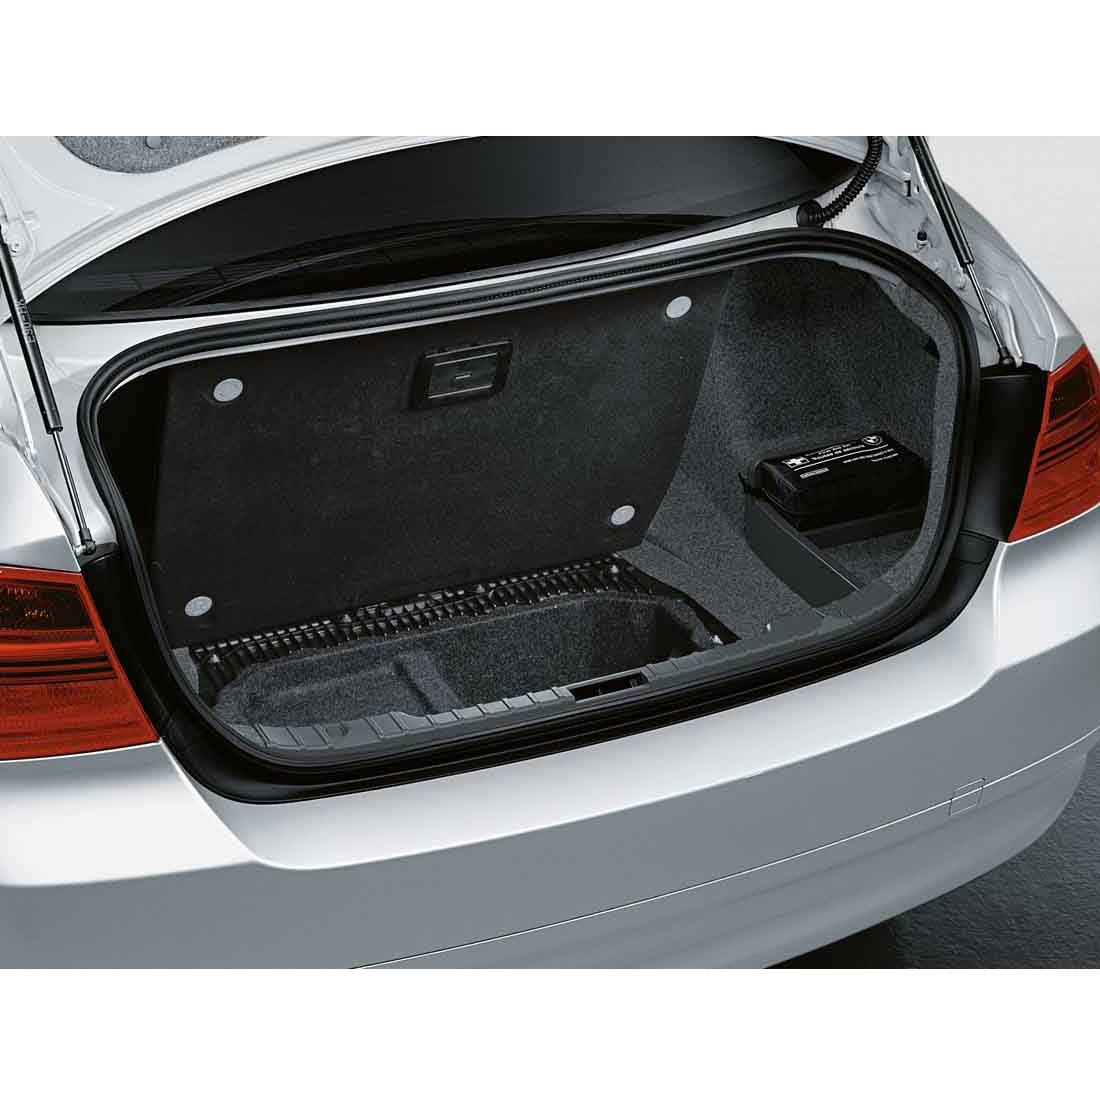 BMW Segmented Storage Compartment